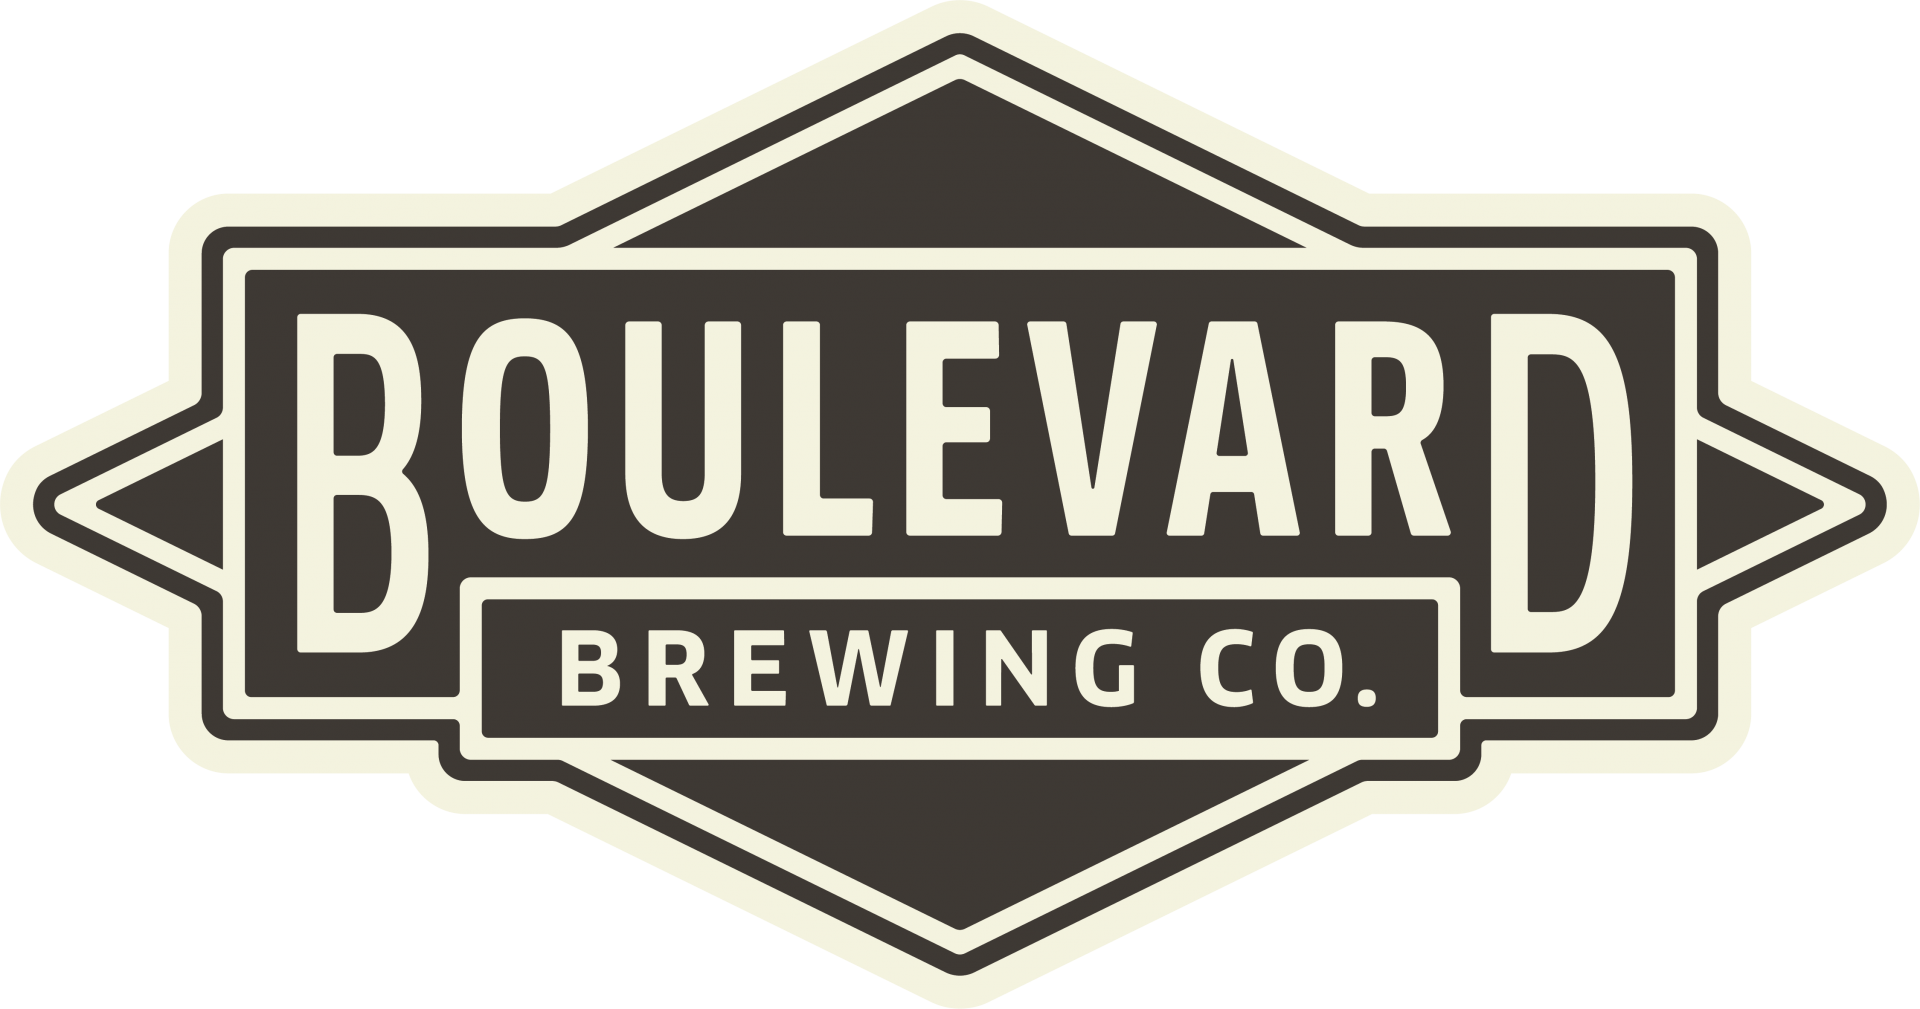 Boulevard Brewing Co.